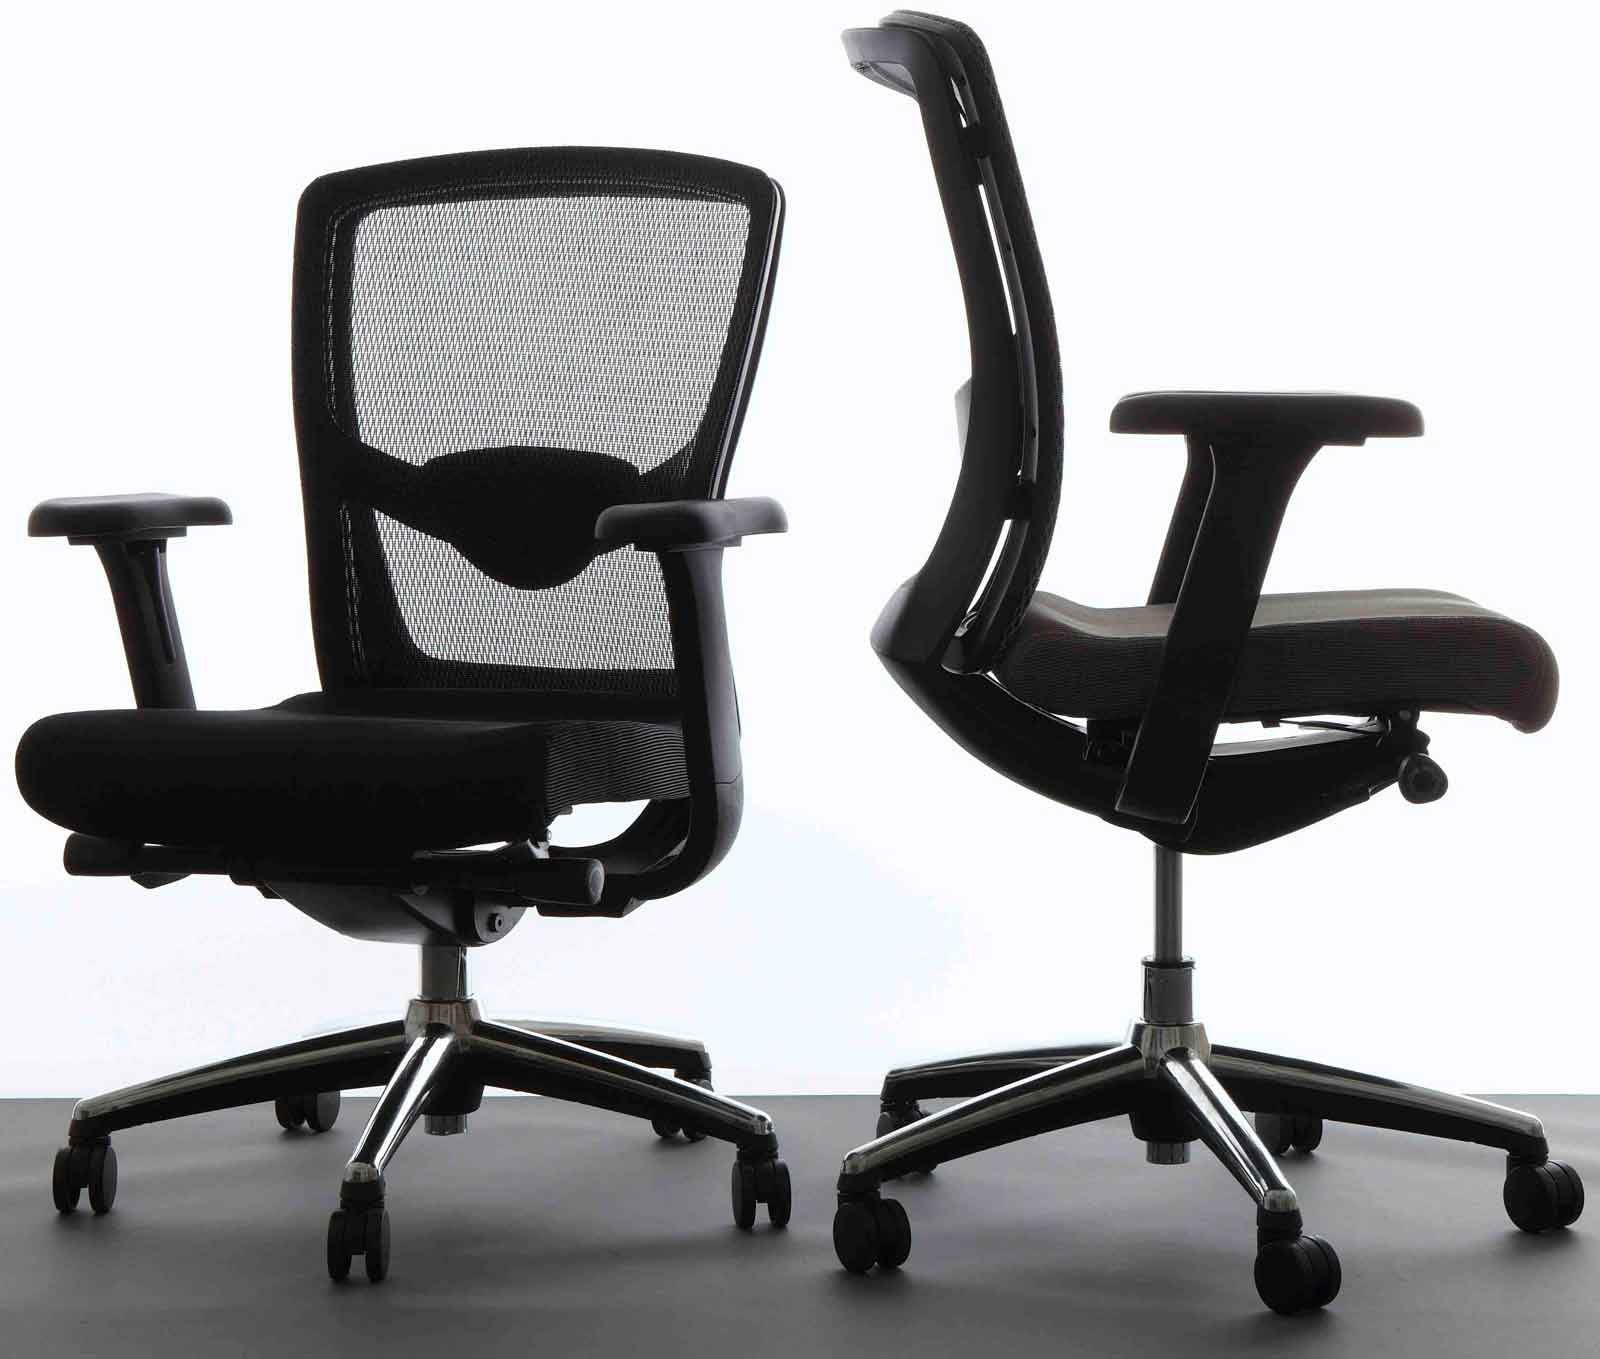 Ergonomic Desk Chairs for Office and Home   Office Furniture